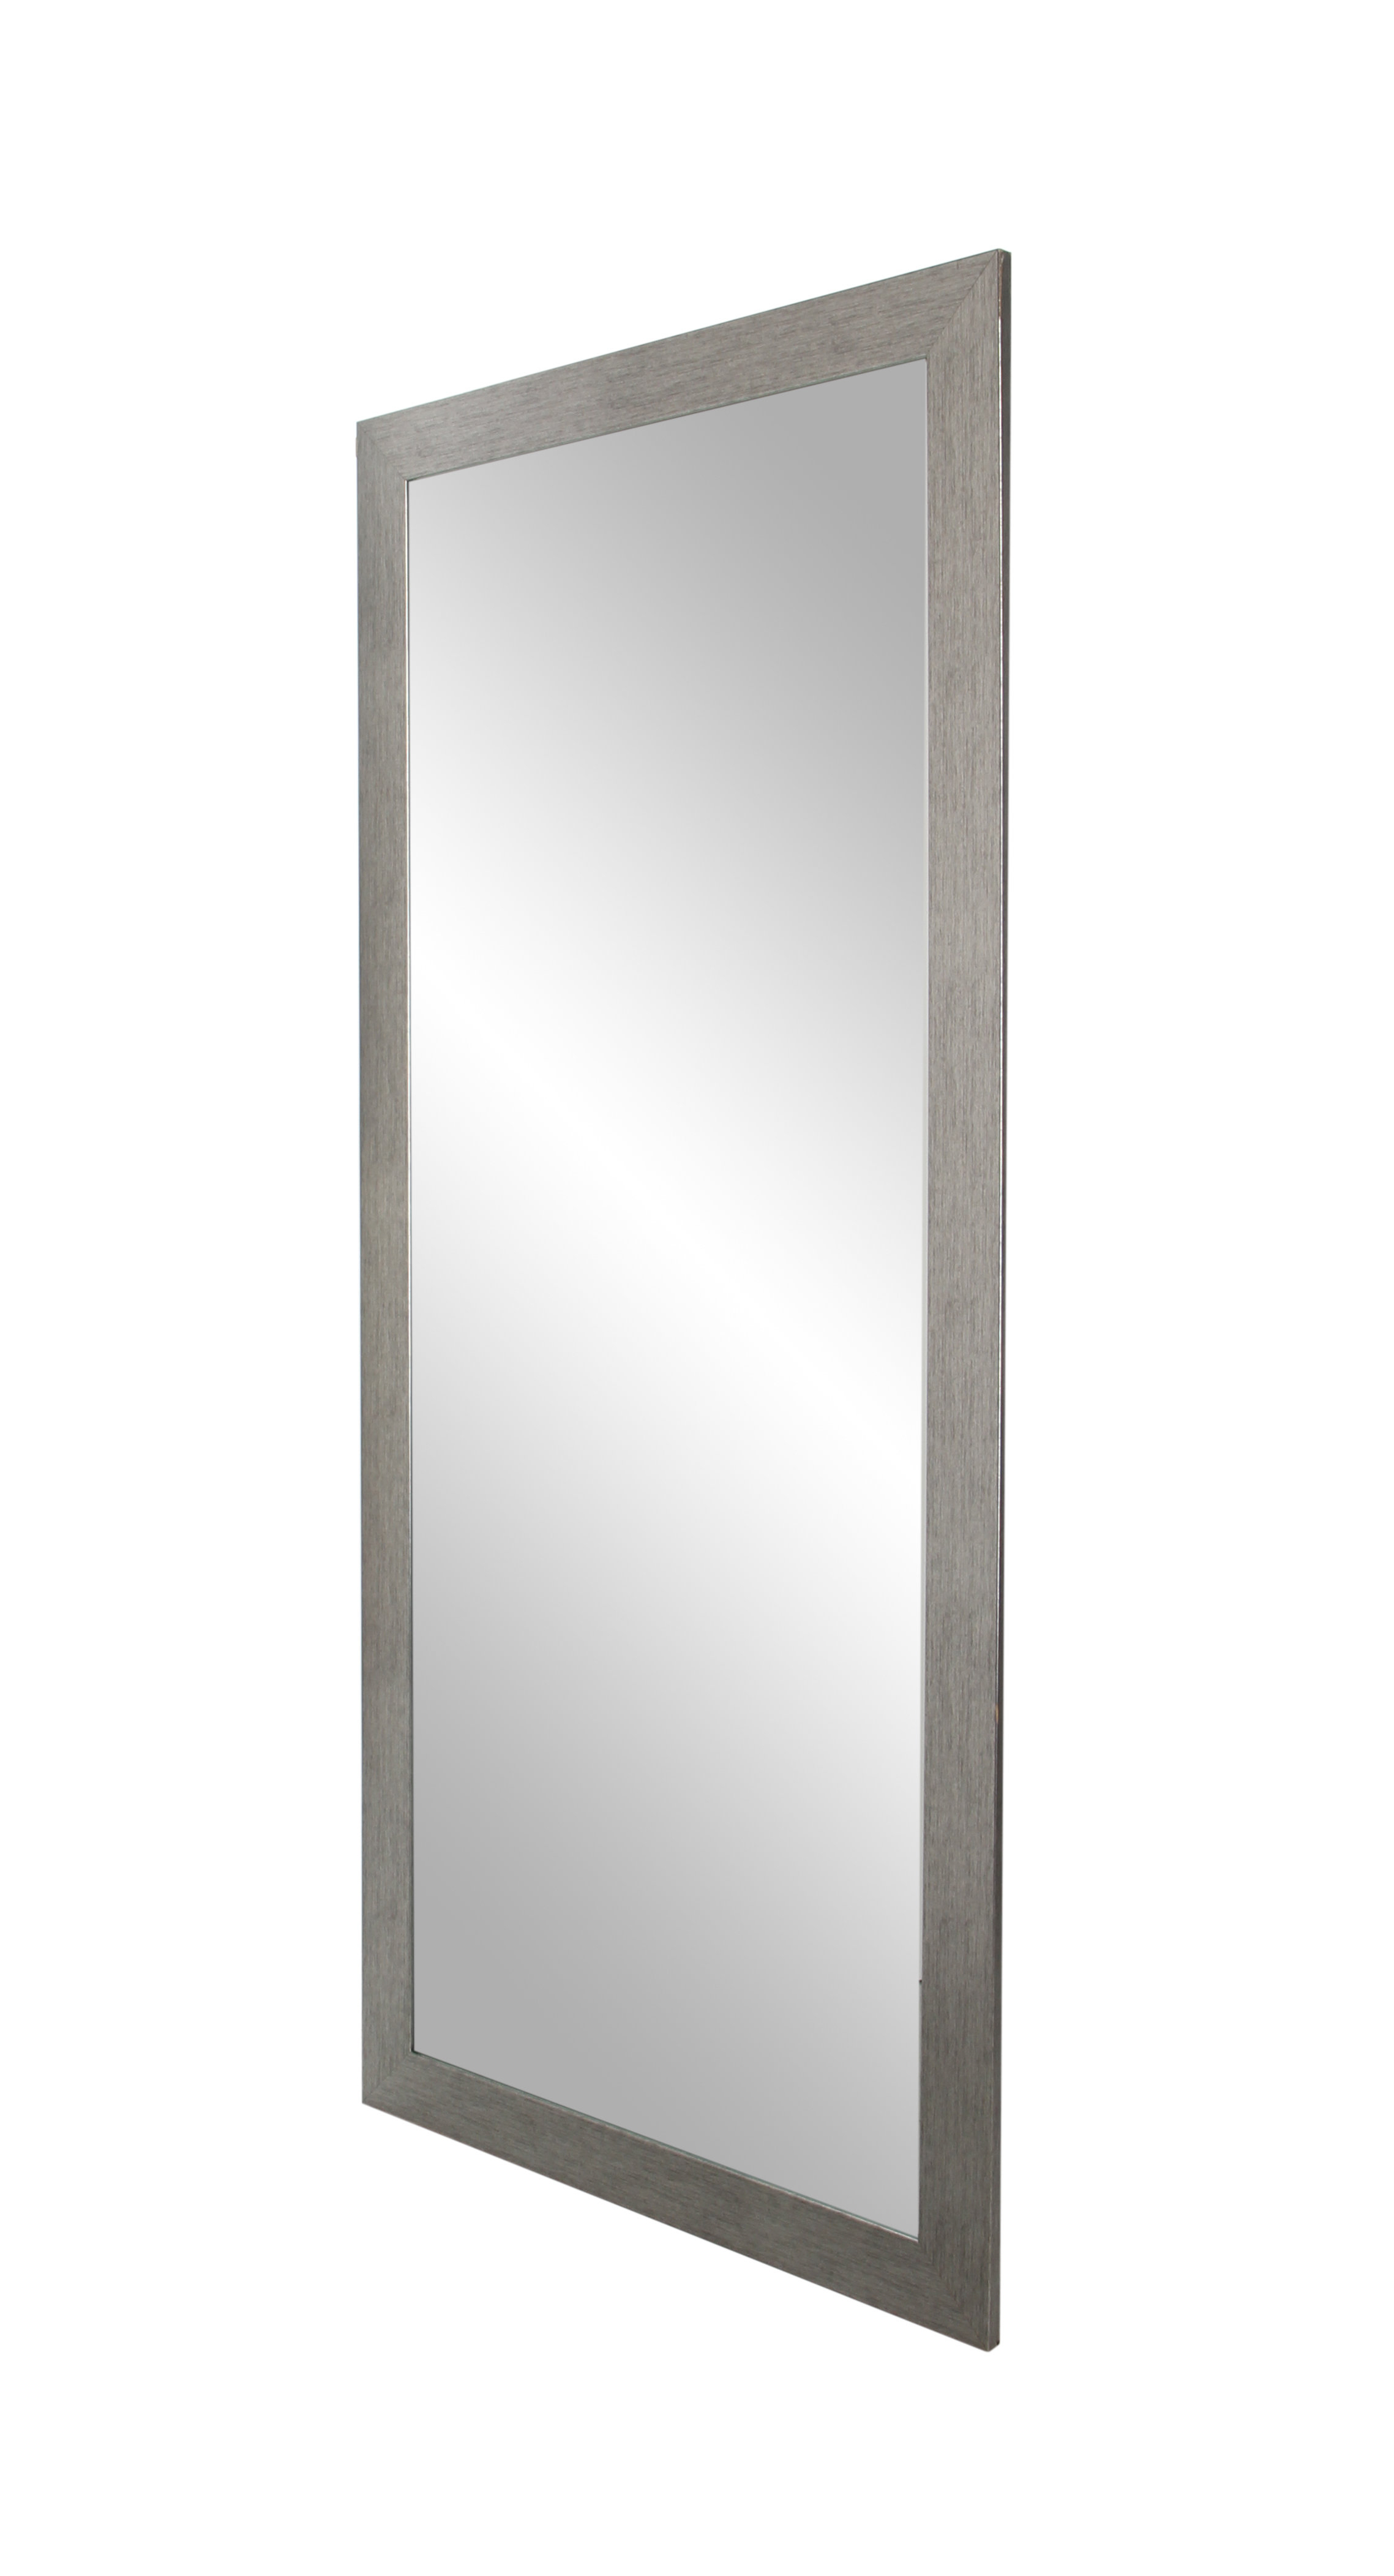 Jameson Modern & Contemporary Full Length Mirror Intended For Dalessio Wide Tall Full Length Mirrors (Image 12 of 20)